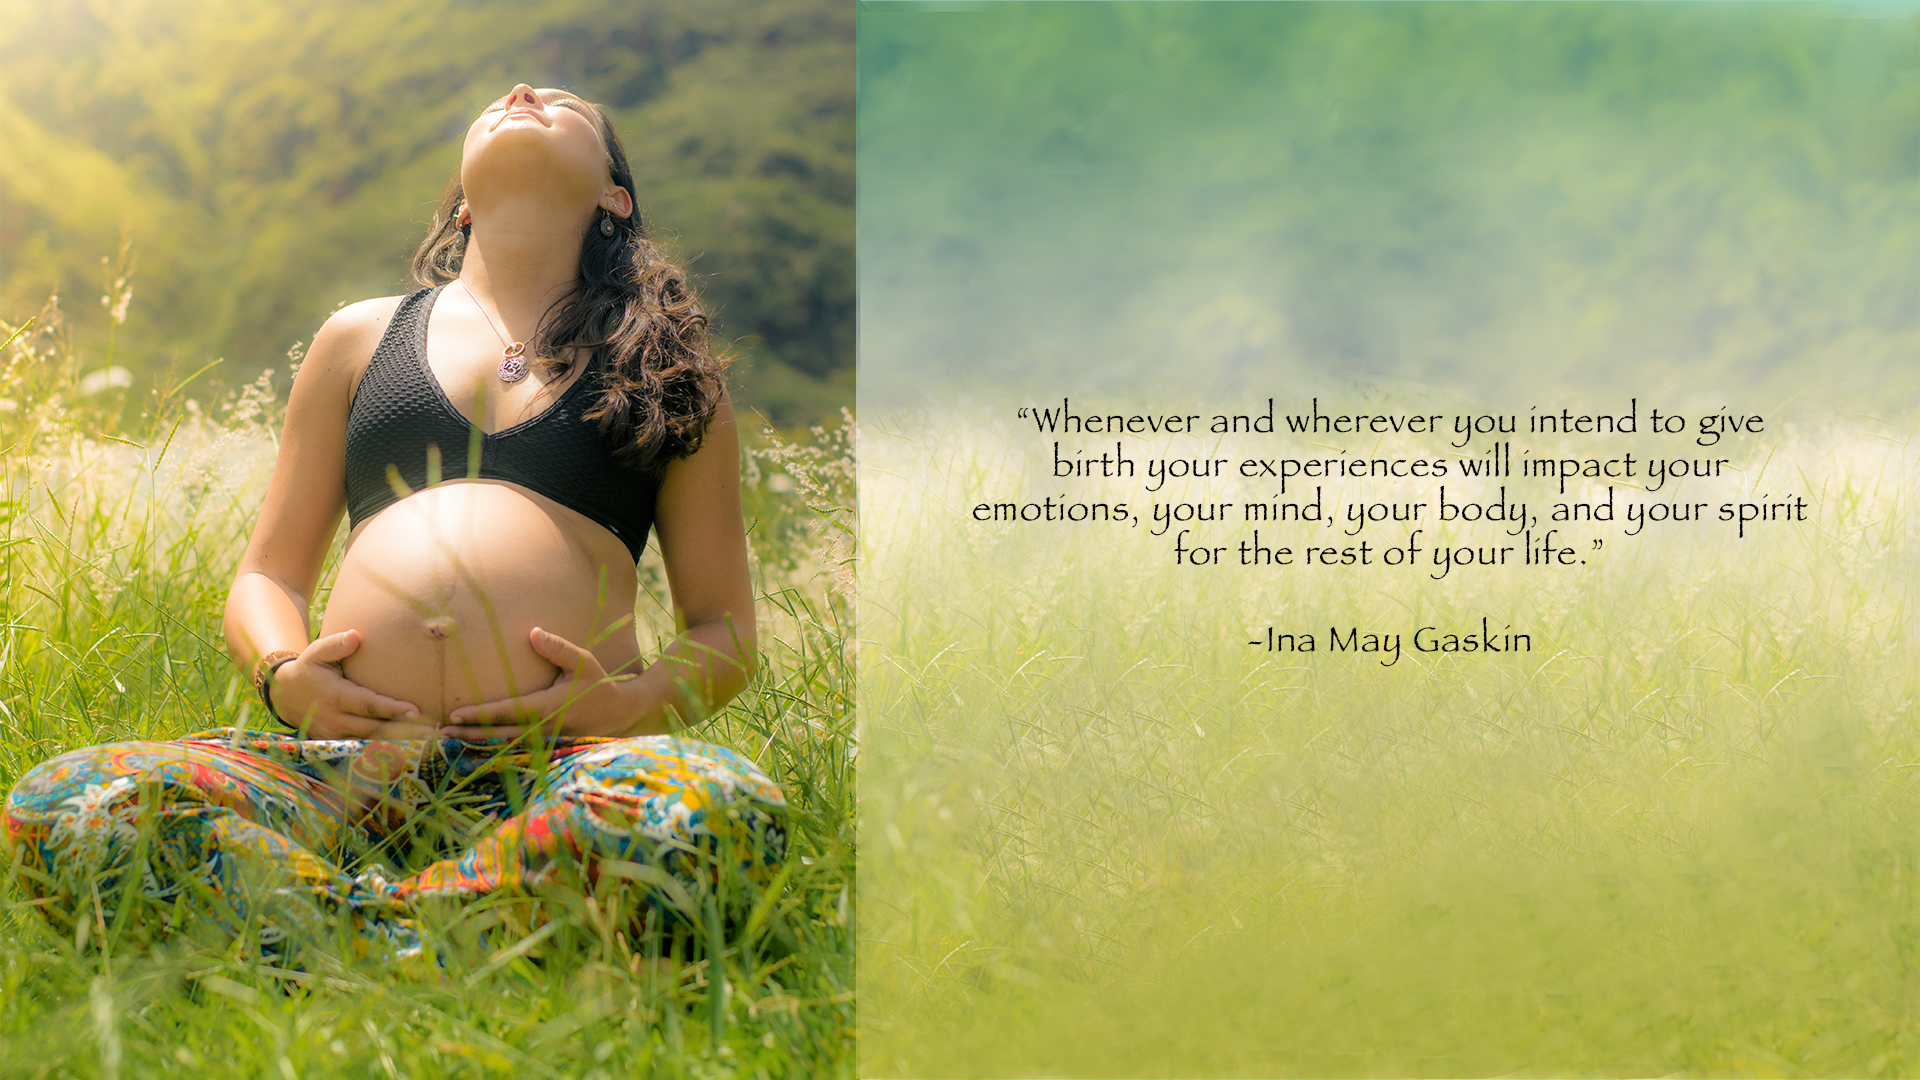 pregnant-woman-quote-2-v2.jpg